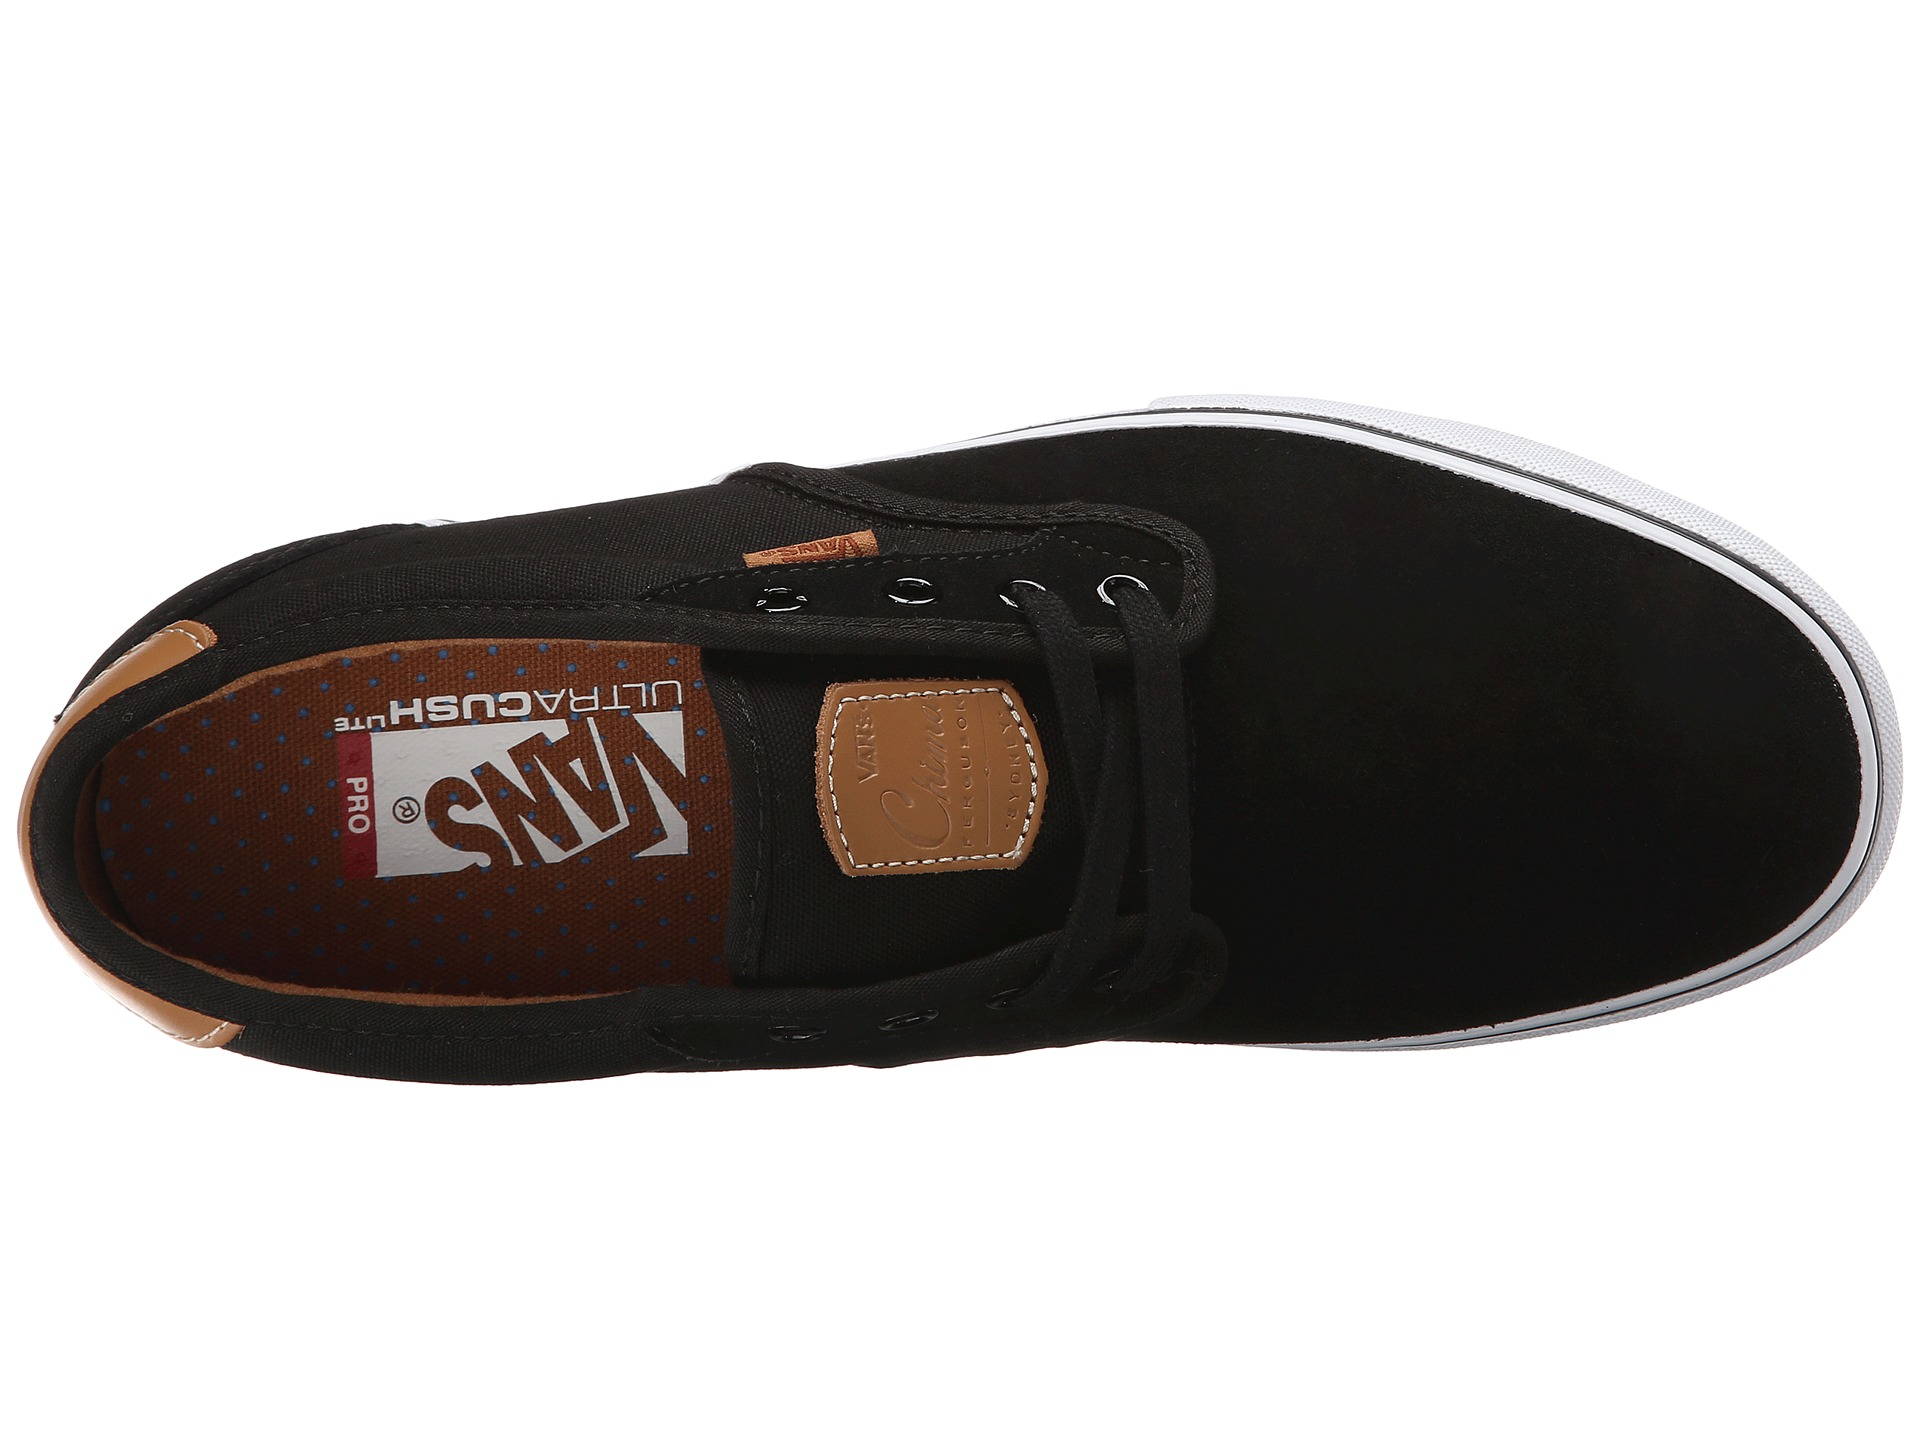 Vans Chima Pro Black White Tan Skate Shoe